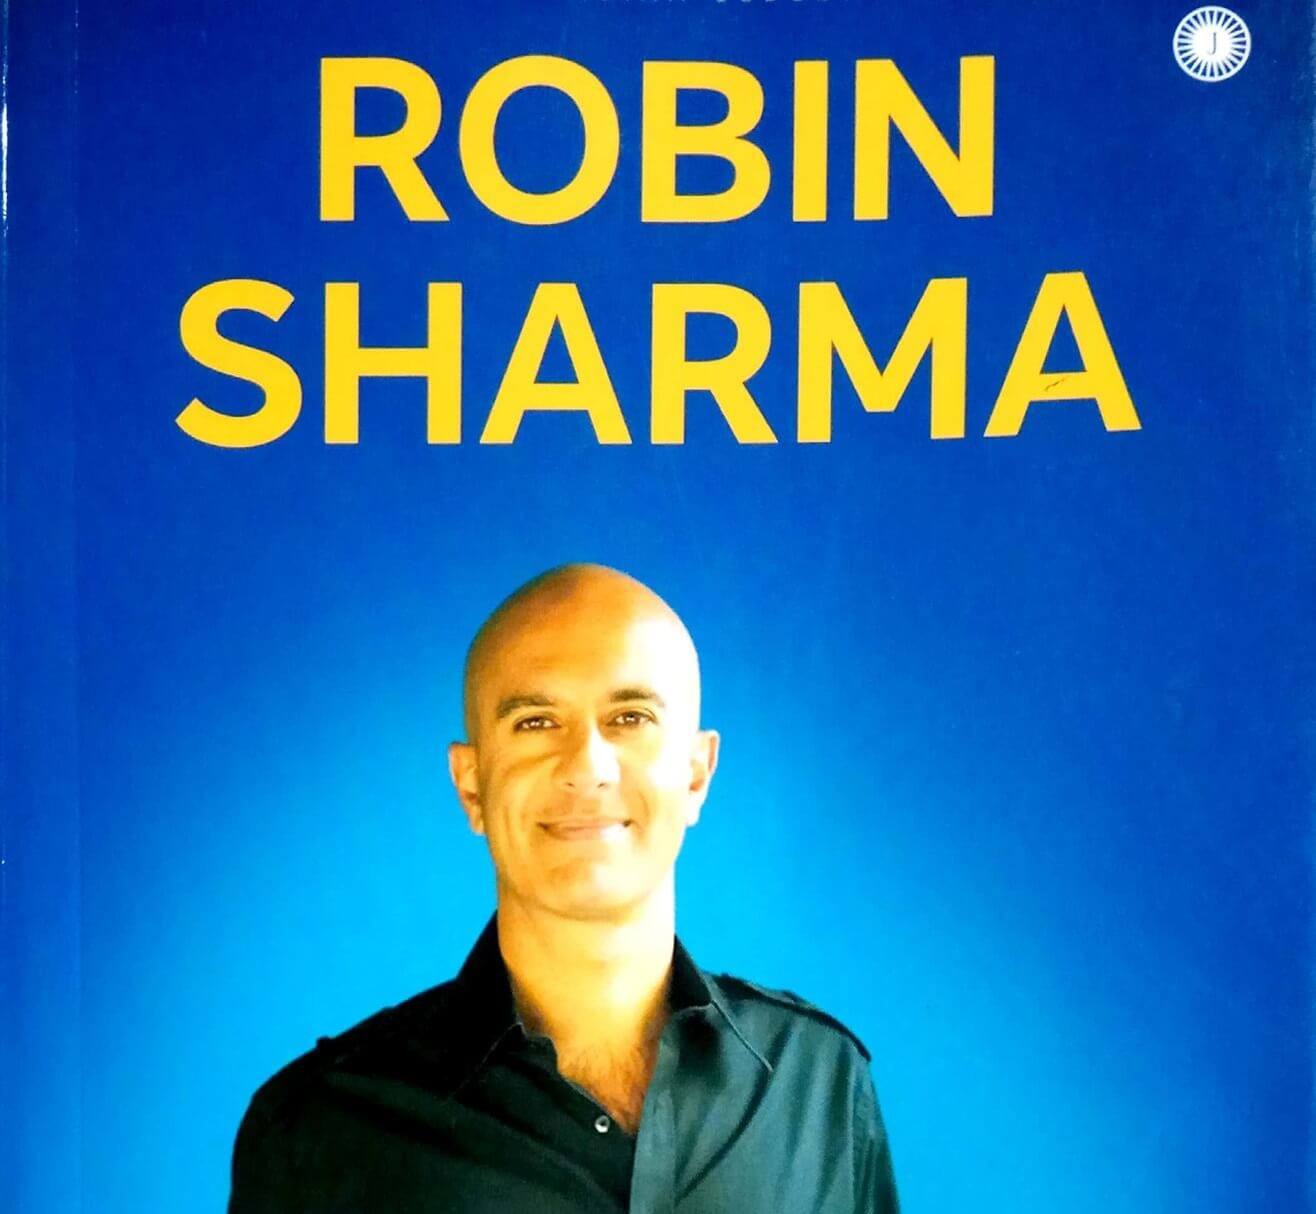 Robin Sharma Motivational Speakers